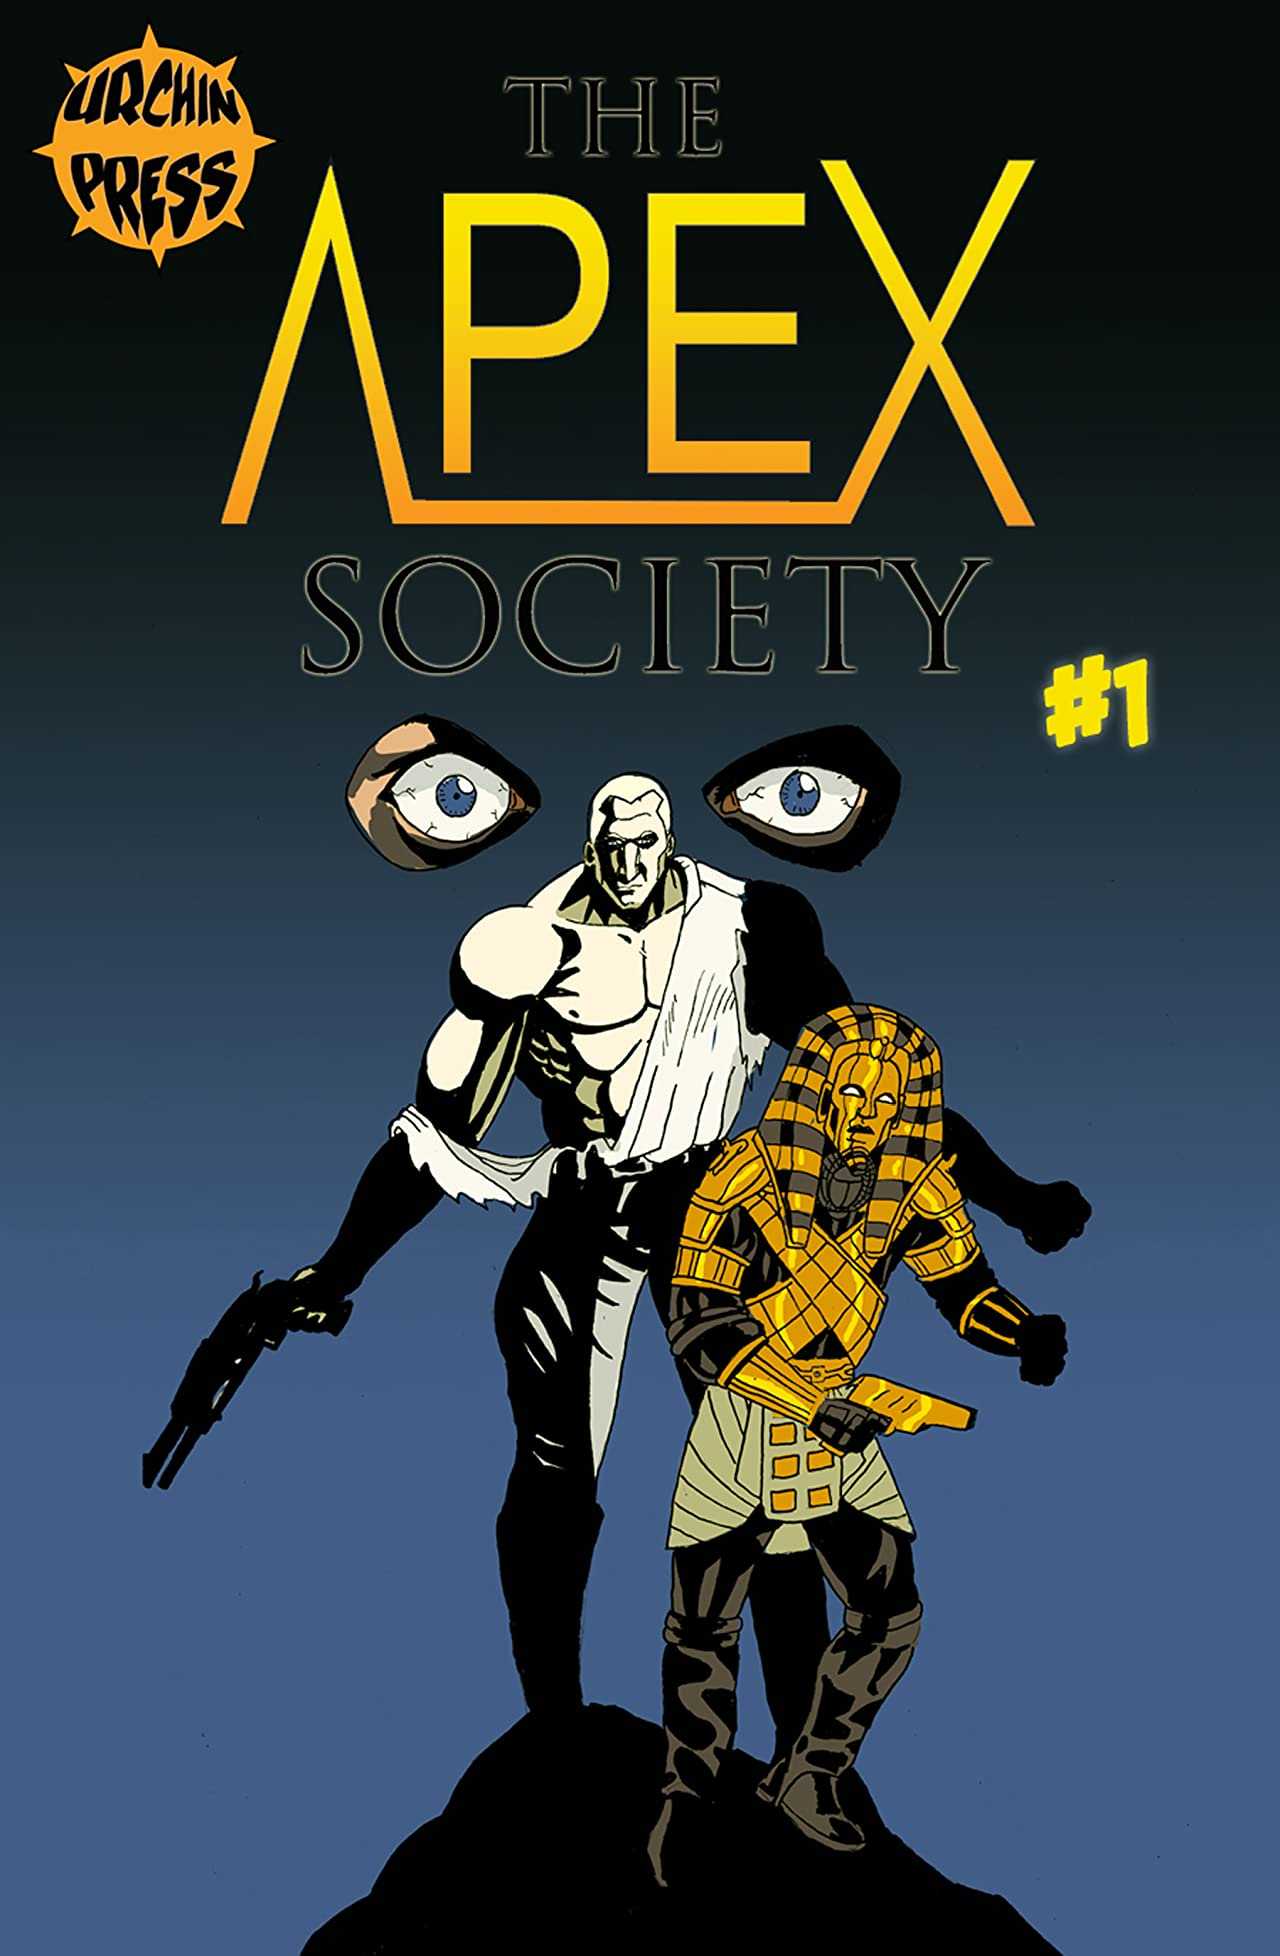 The Apex Society #1